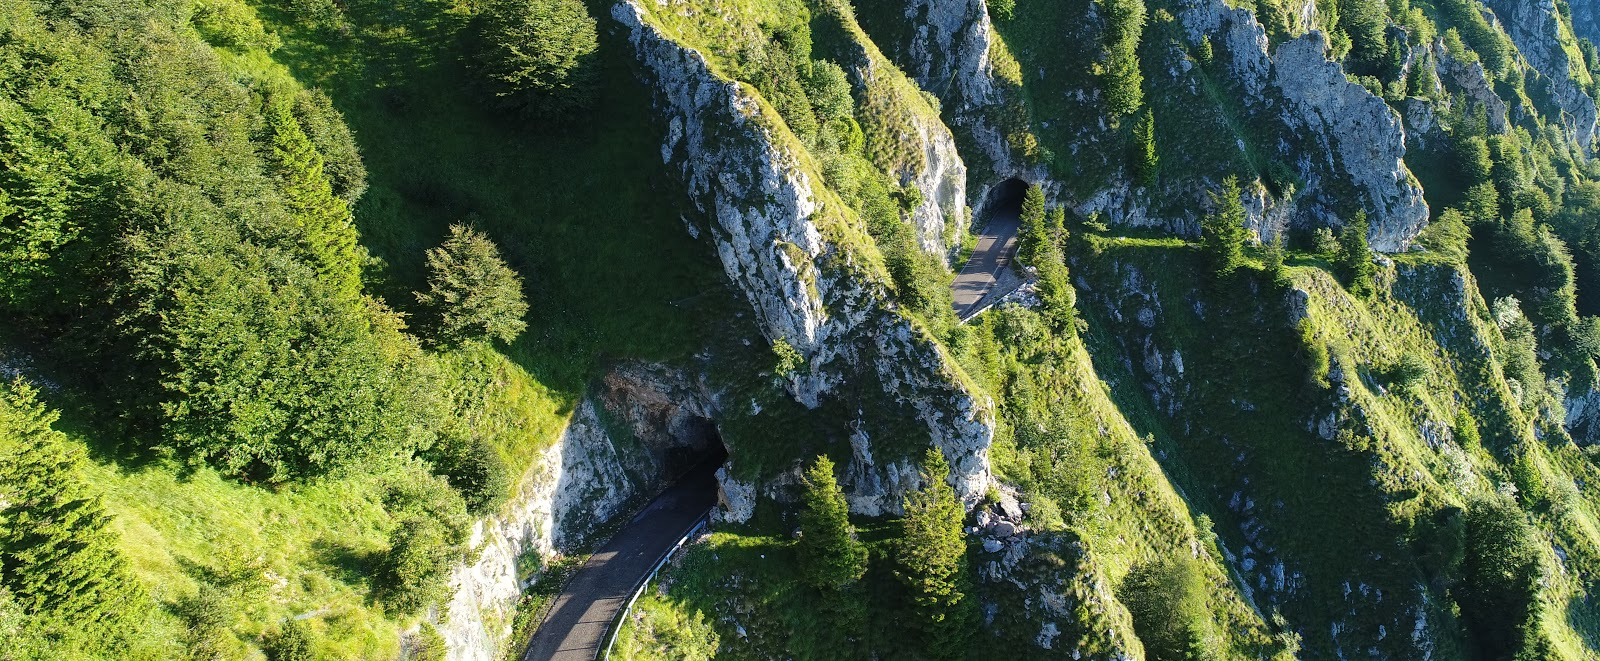 Bicycle ride Monte Grappa from Possagno - aerial drone photo of tunnels and cliff